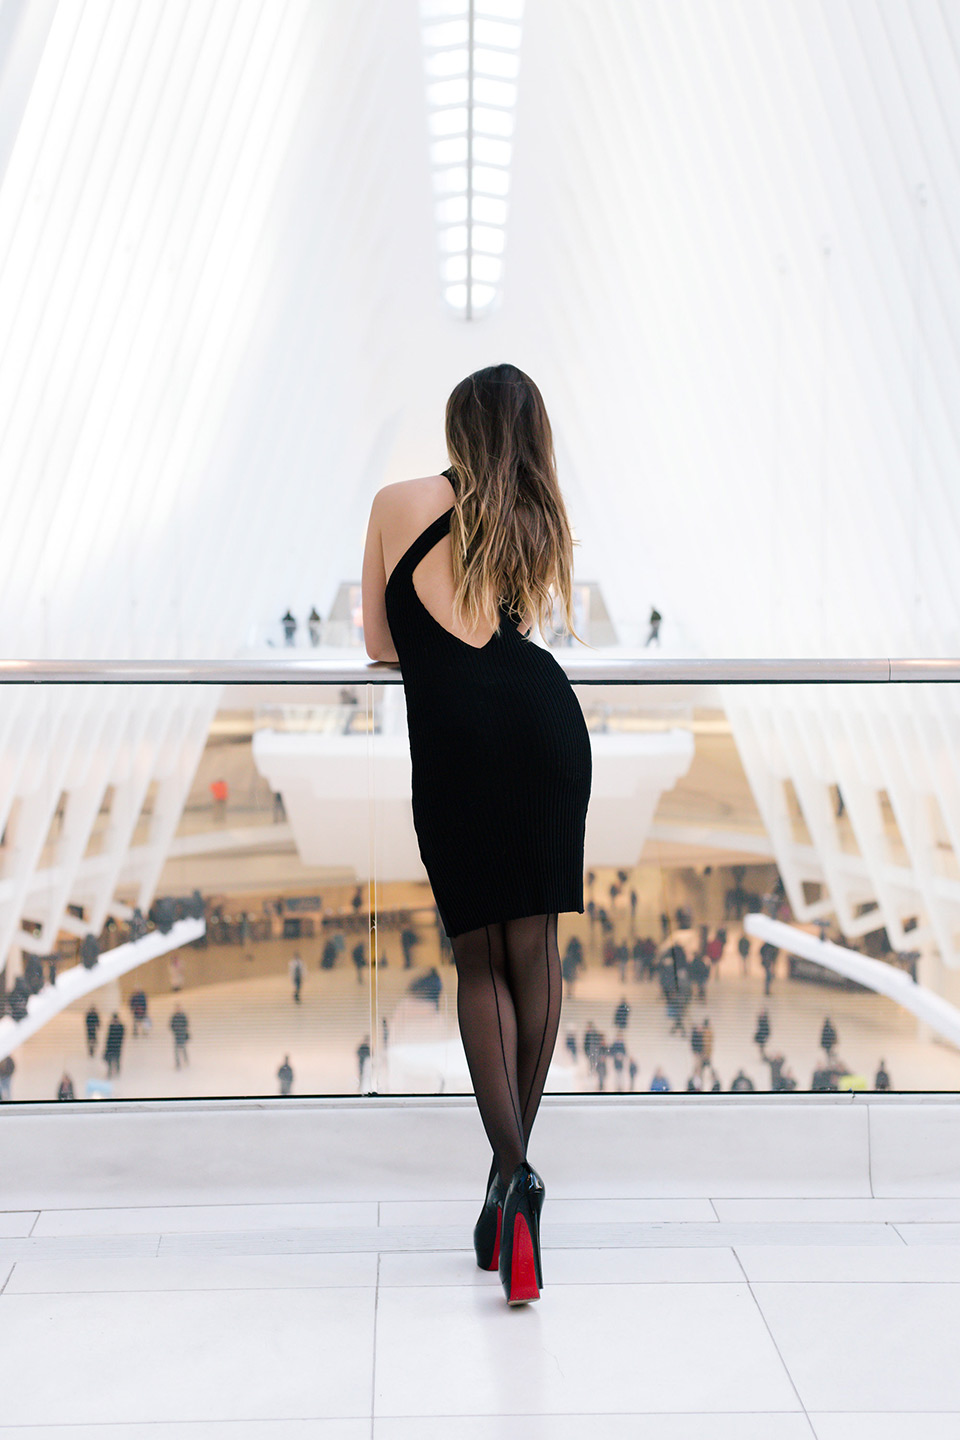 Oculus World Trade Centre by Calatrava. New York, Ulia Ali Pillmore.